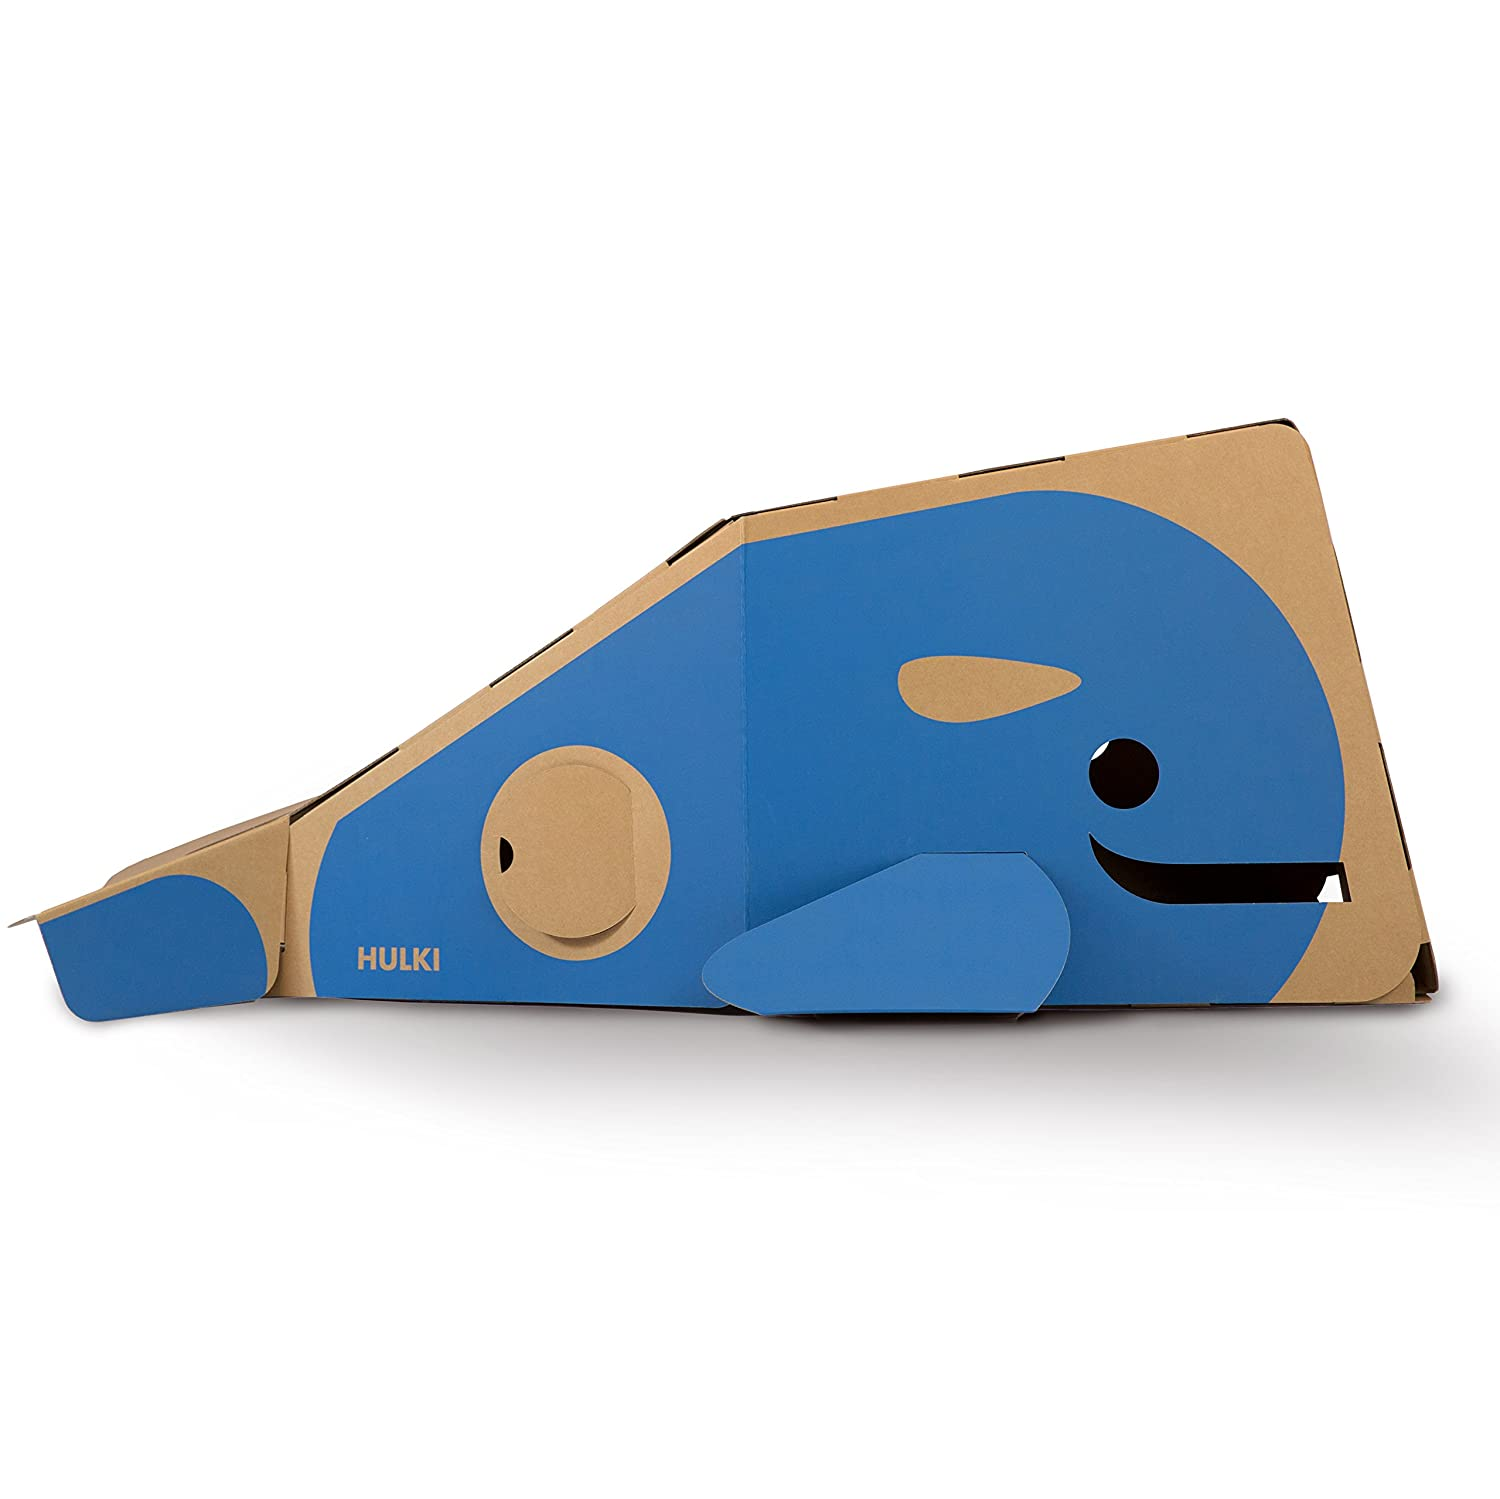 ECR4Kids Skipper the Whale Eco Eco Playhouse Ultra Strong Cardboard Play Structure for Kids Blue